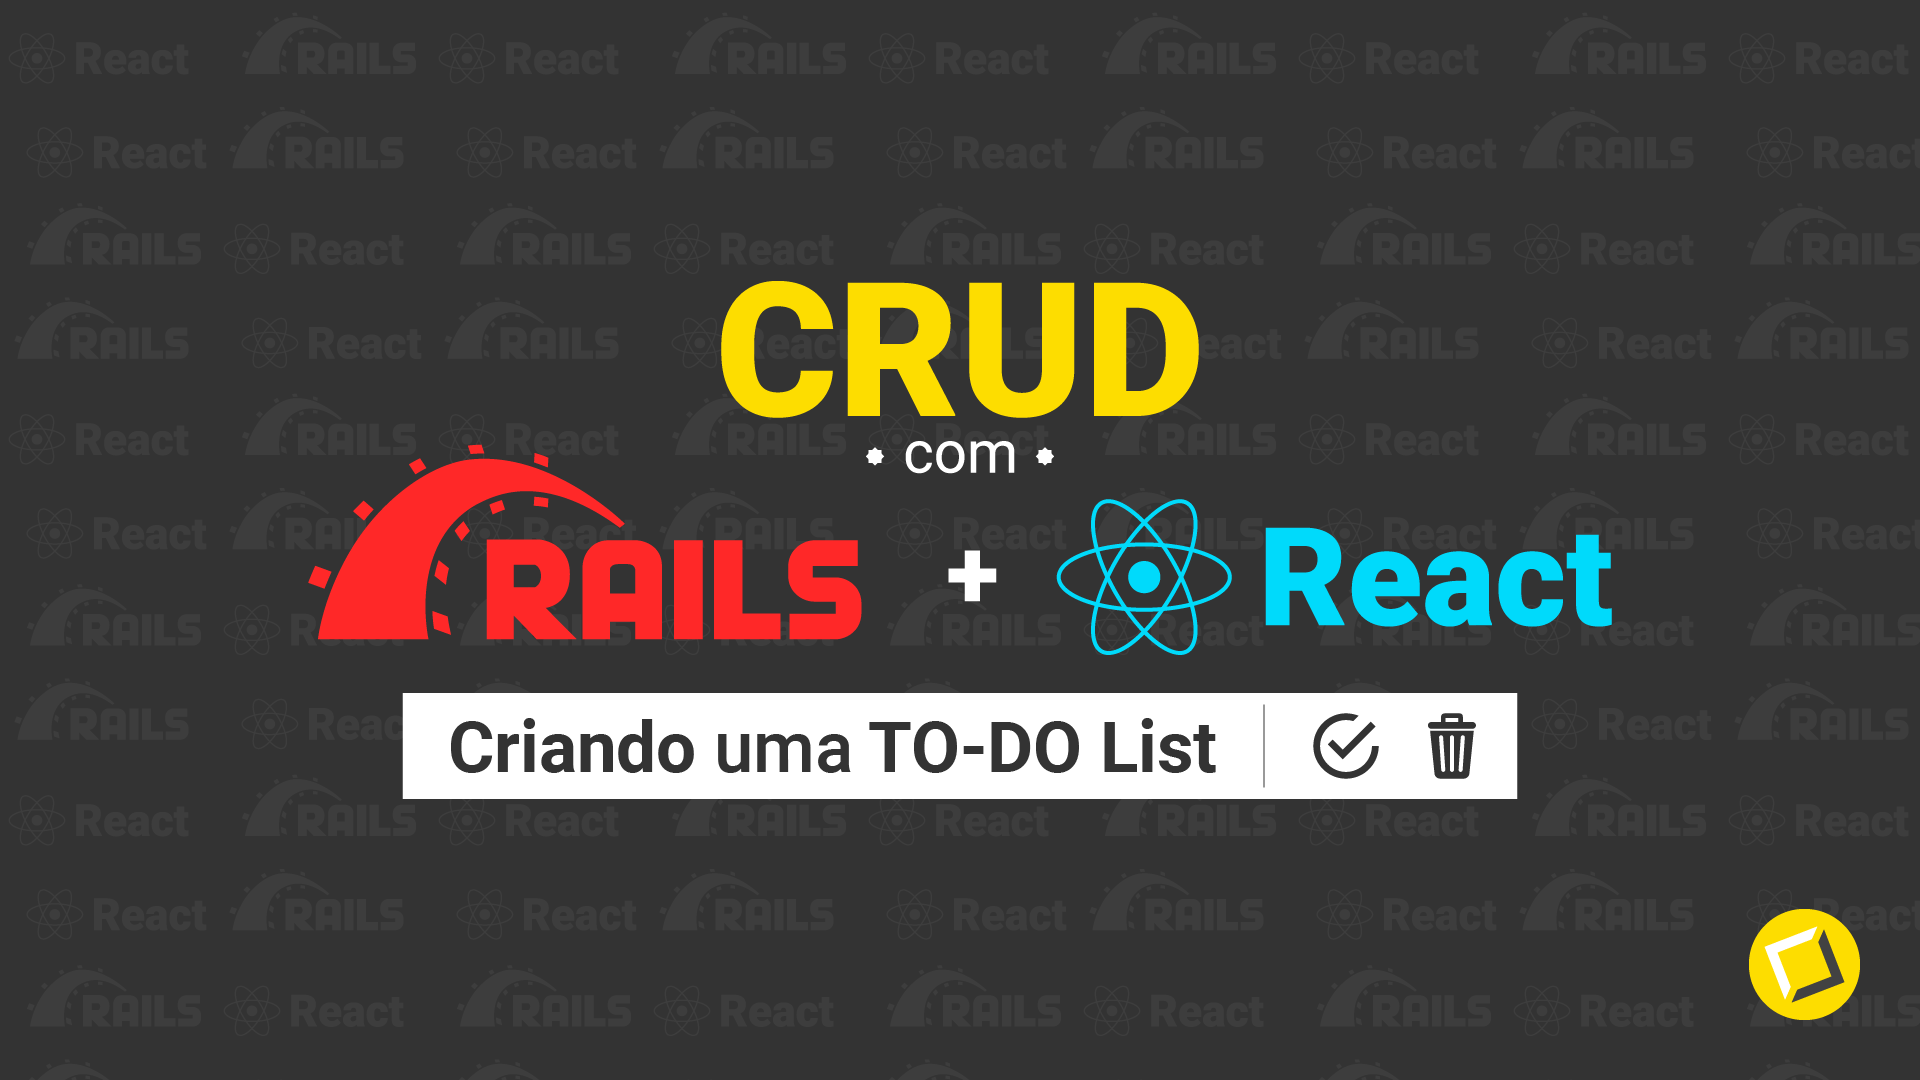 CRUD com Rails e React: Criando uma TO-DO List